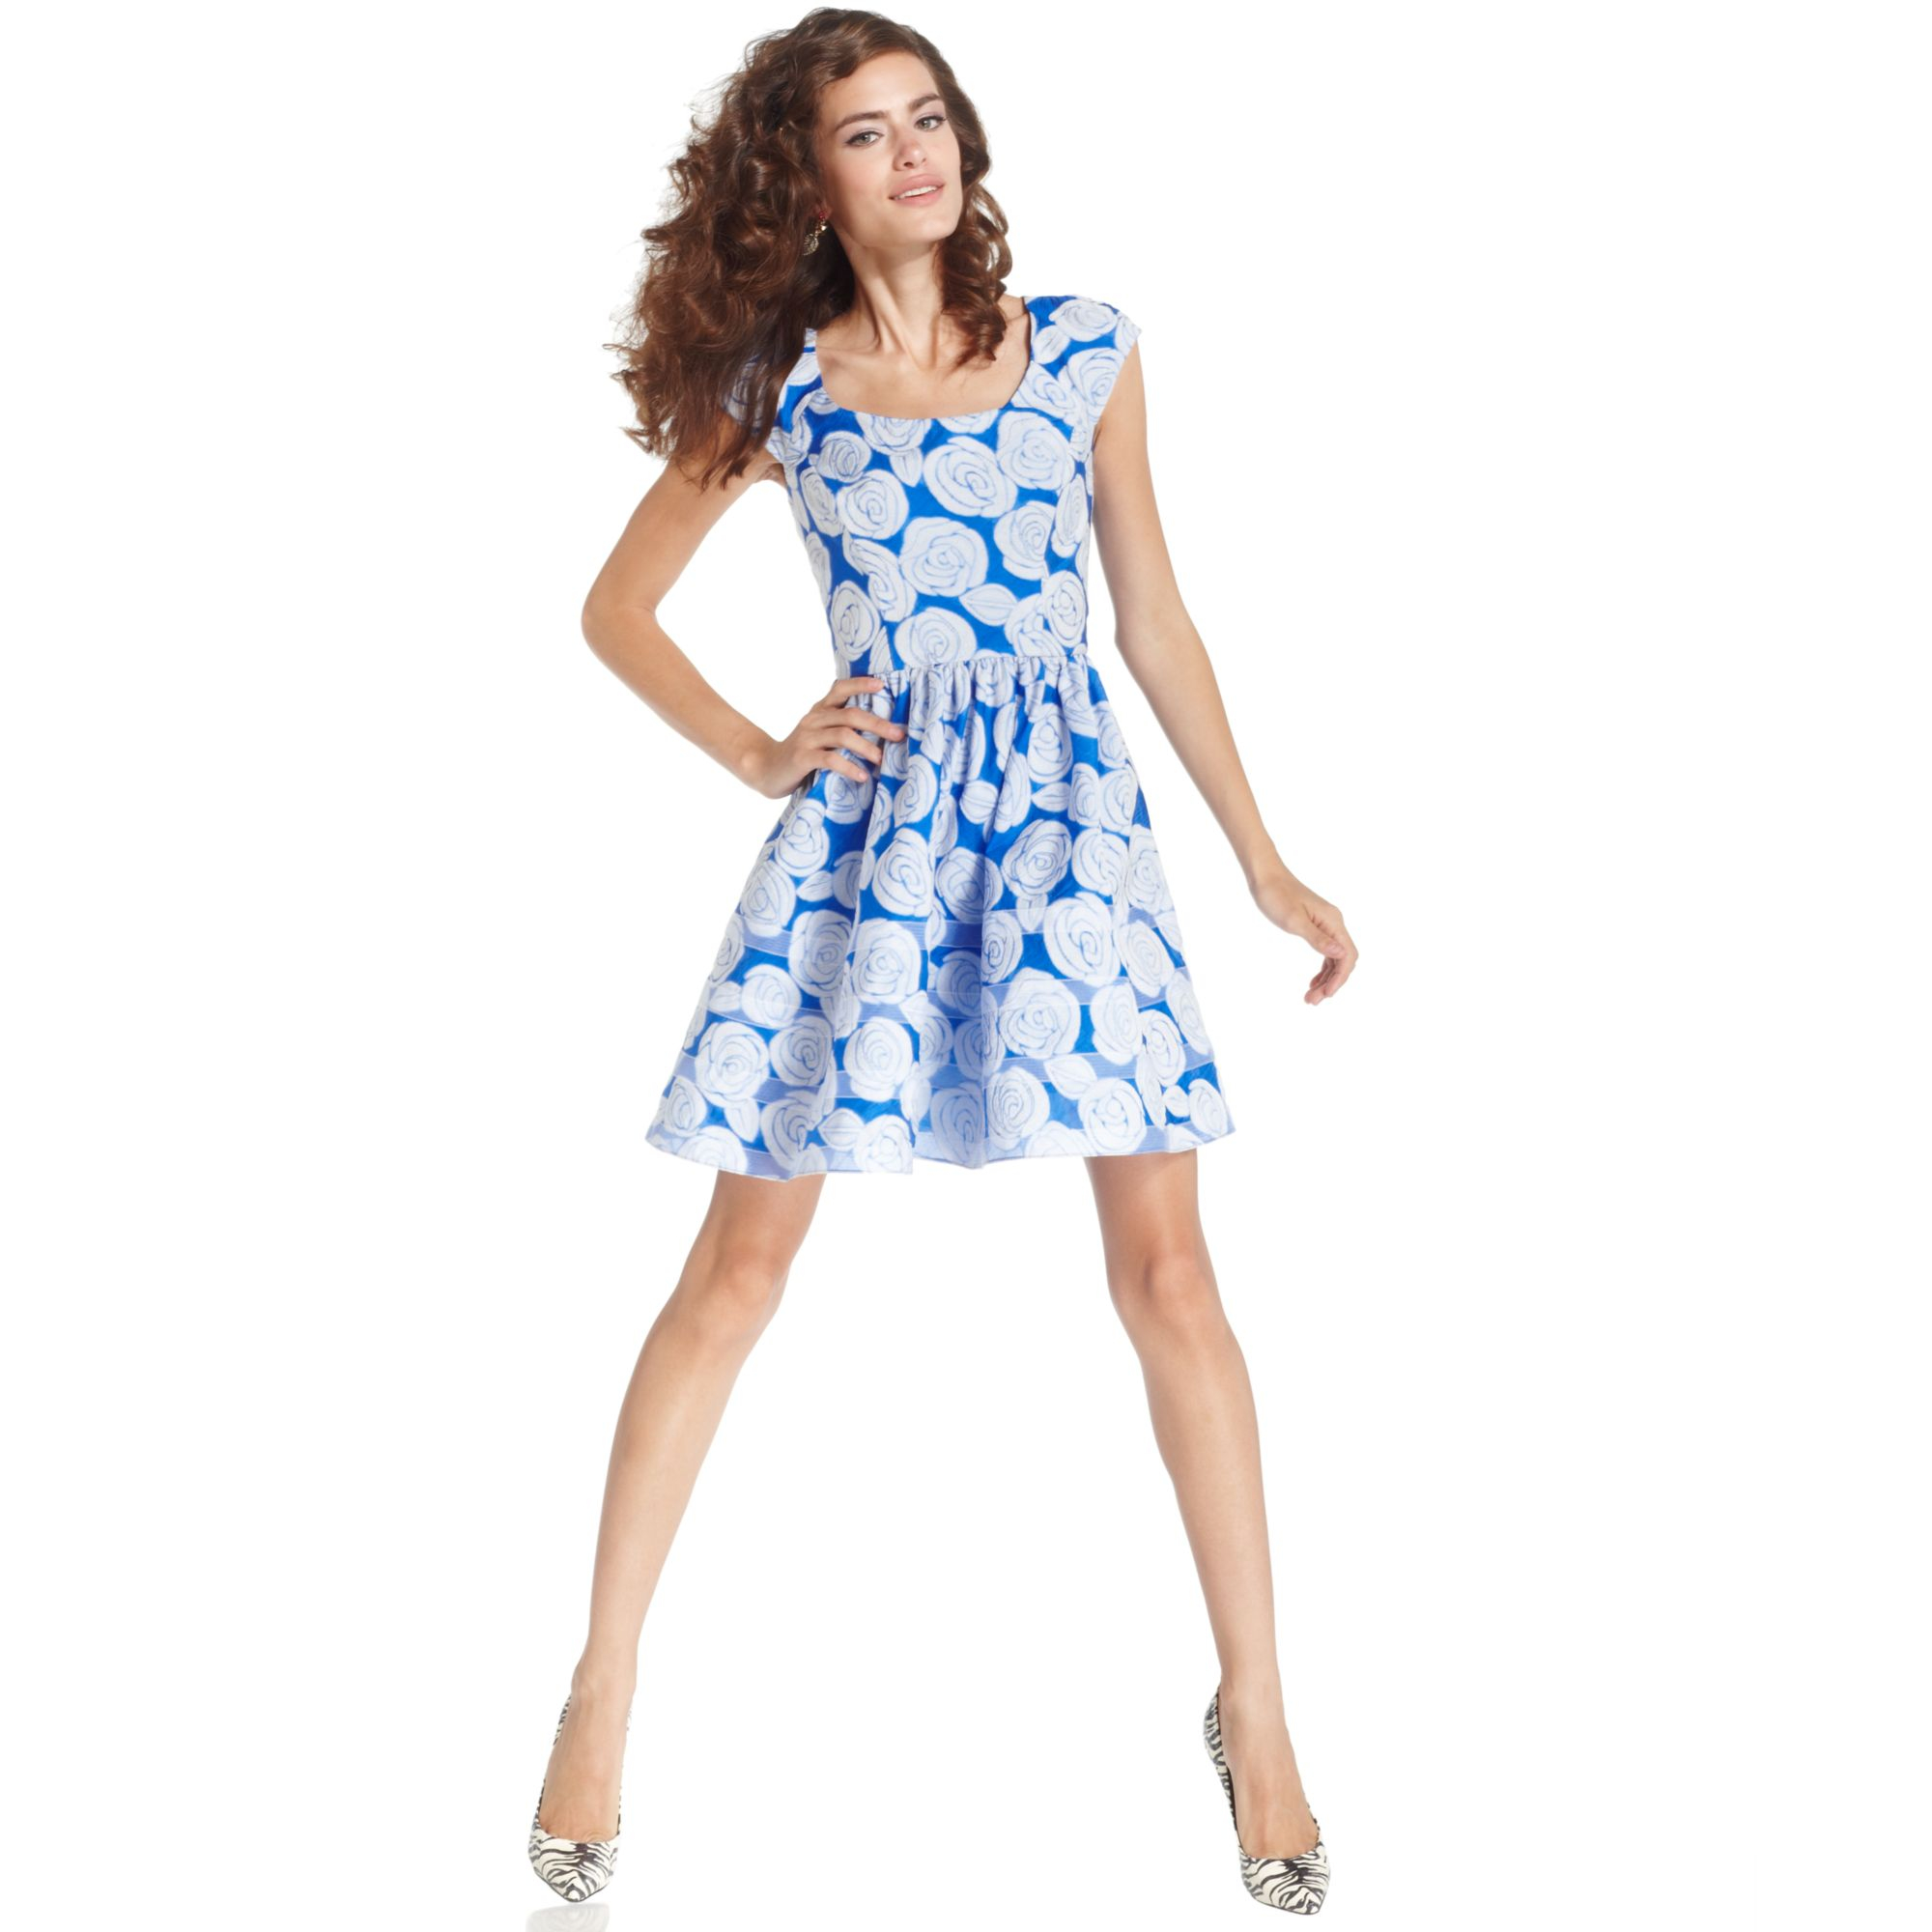 8a45e848ac Lyst - Betsey Johnson Cap Sleeve Floral Print Dress in White